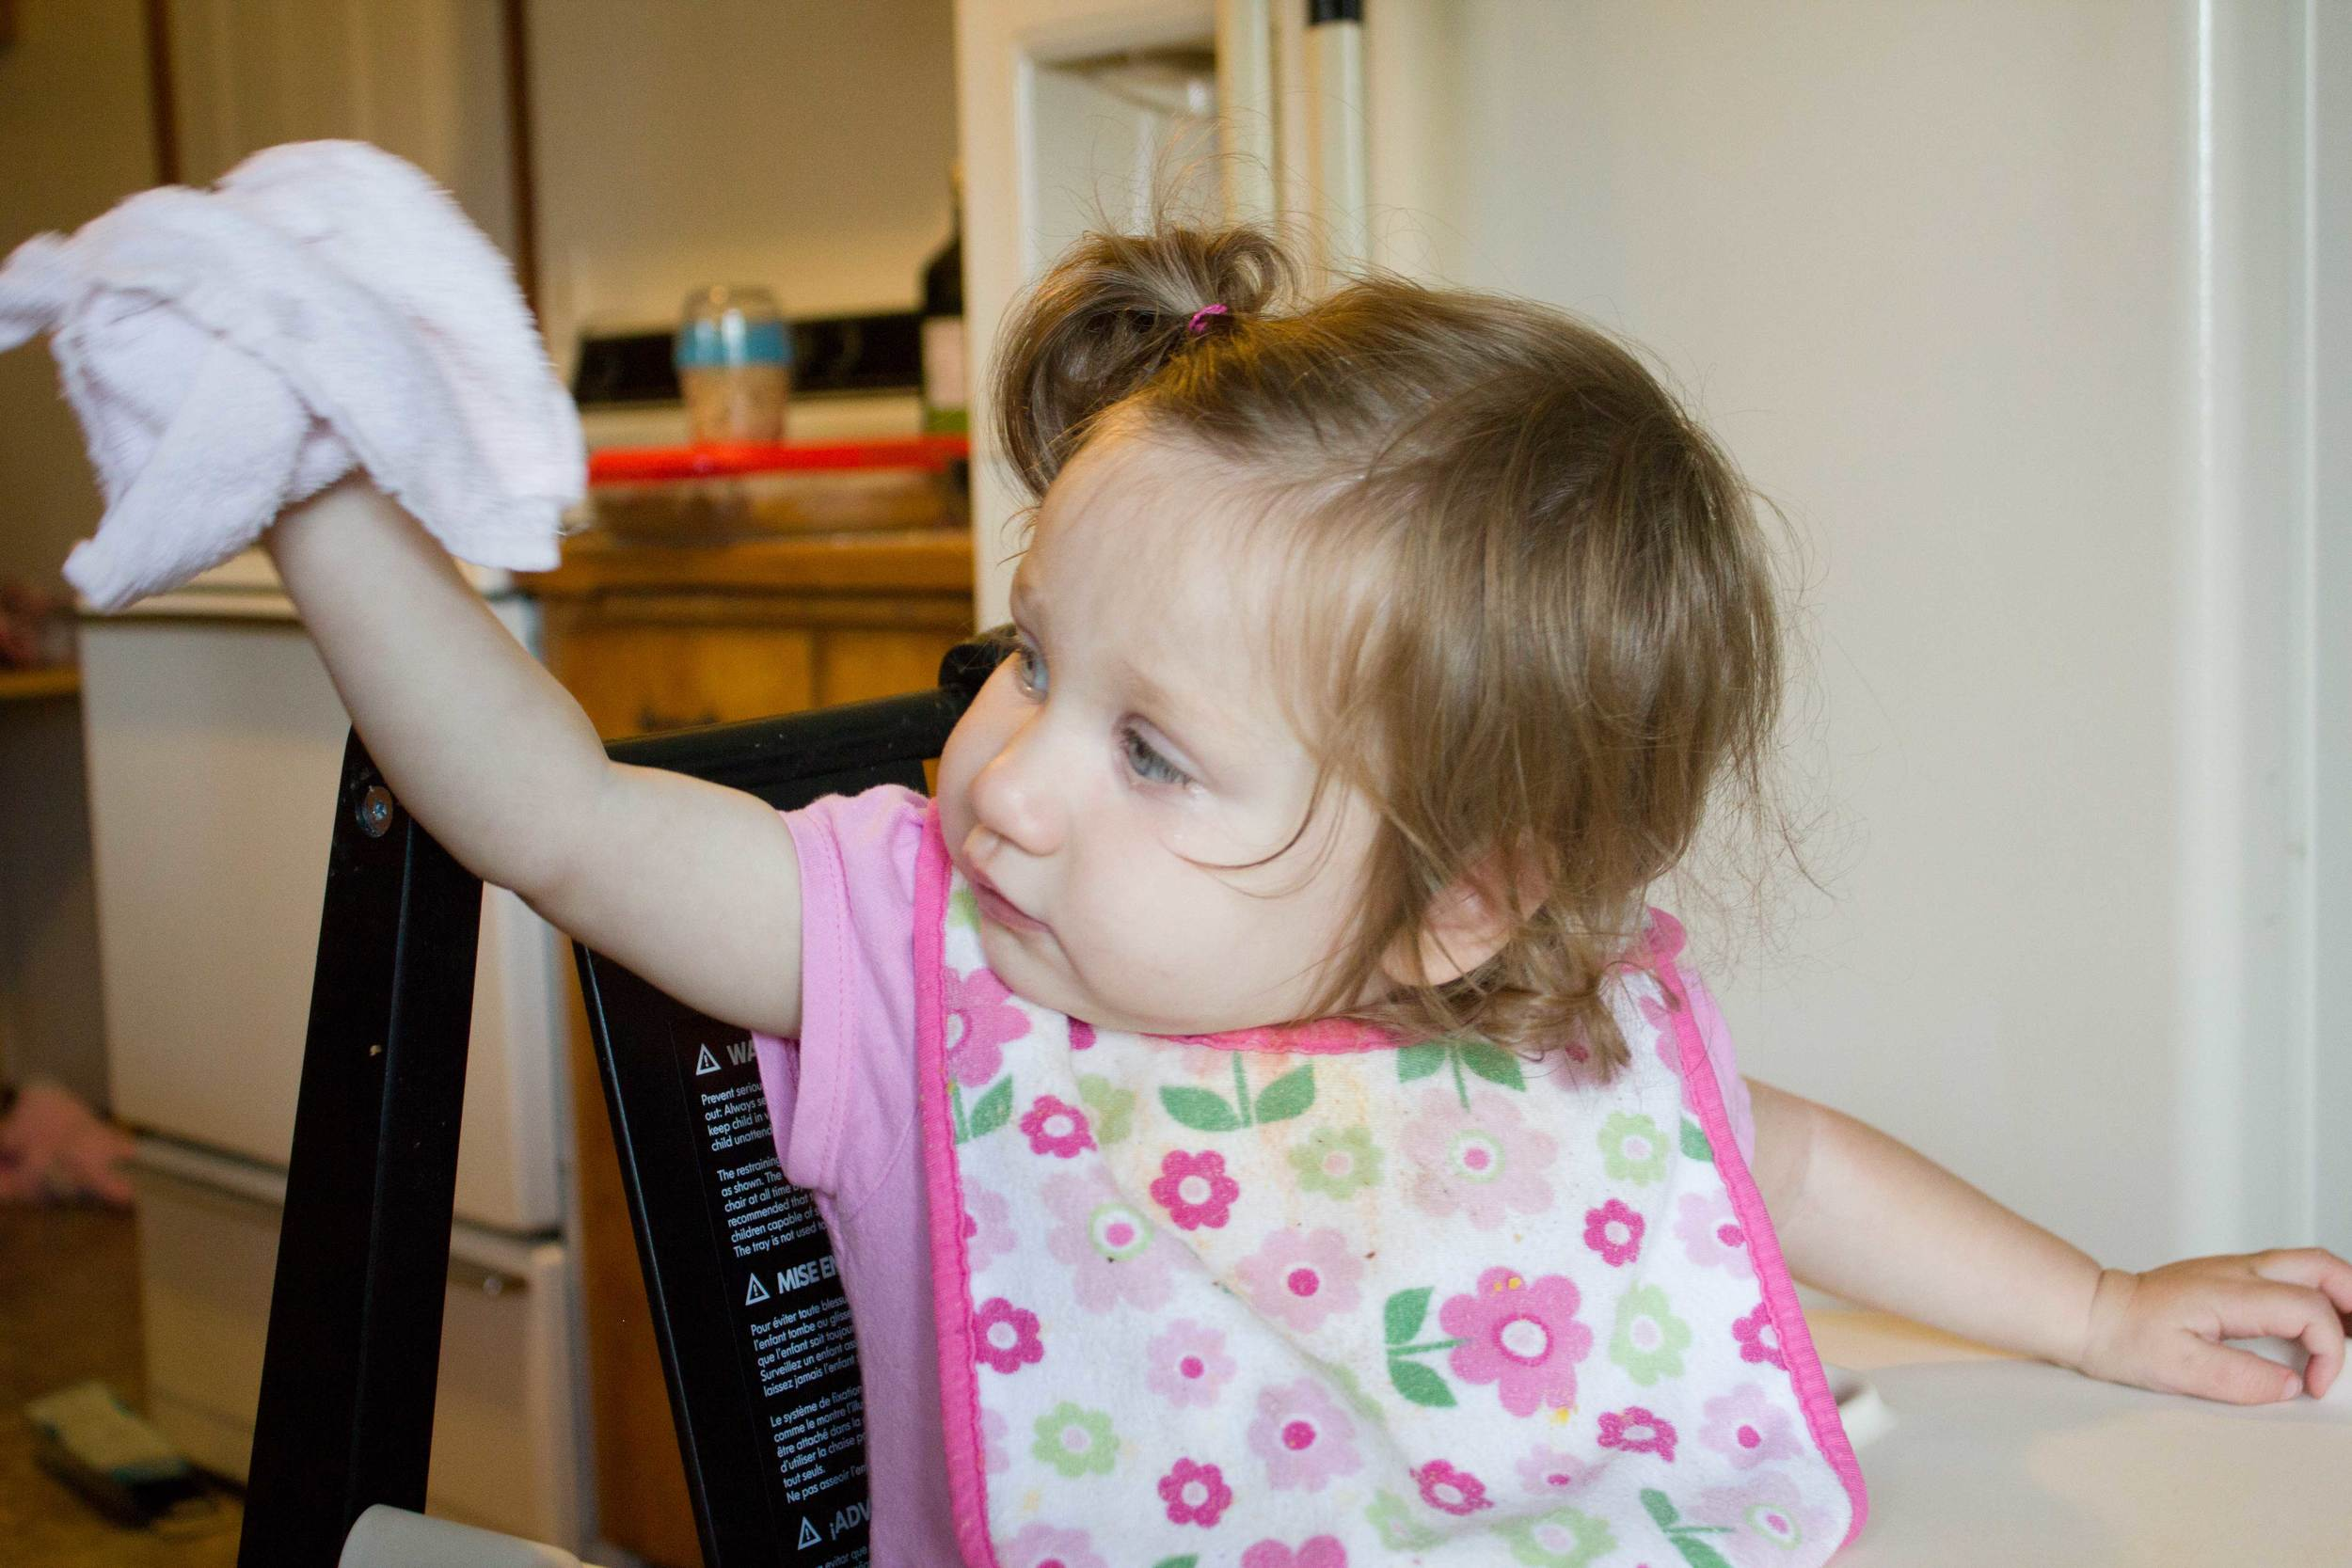 All done wiping off her tray. I didn't teach her or tell her to do it, she just saw me wiping her tray and wanted to do it herself. Simple service.